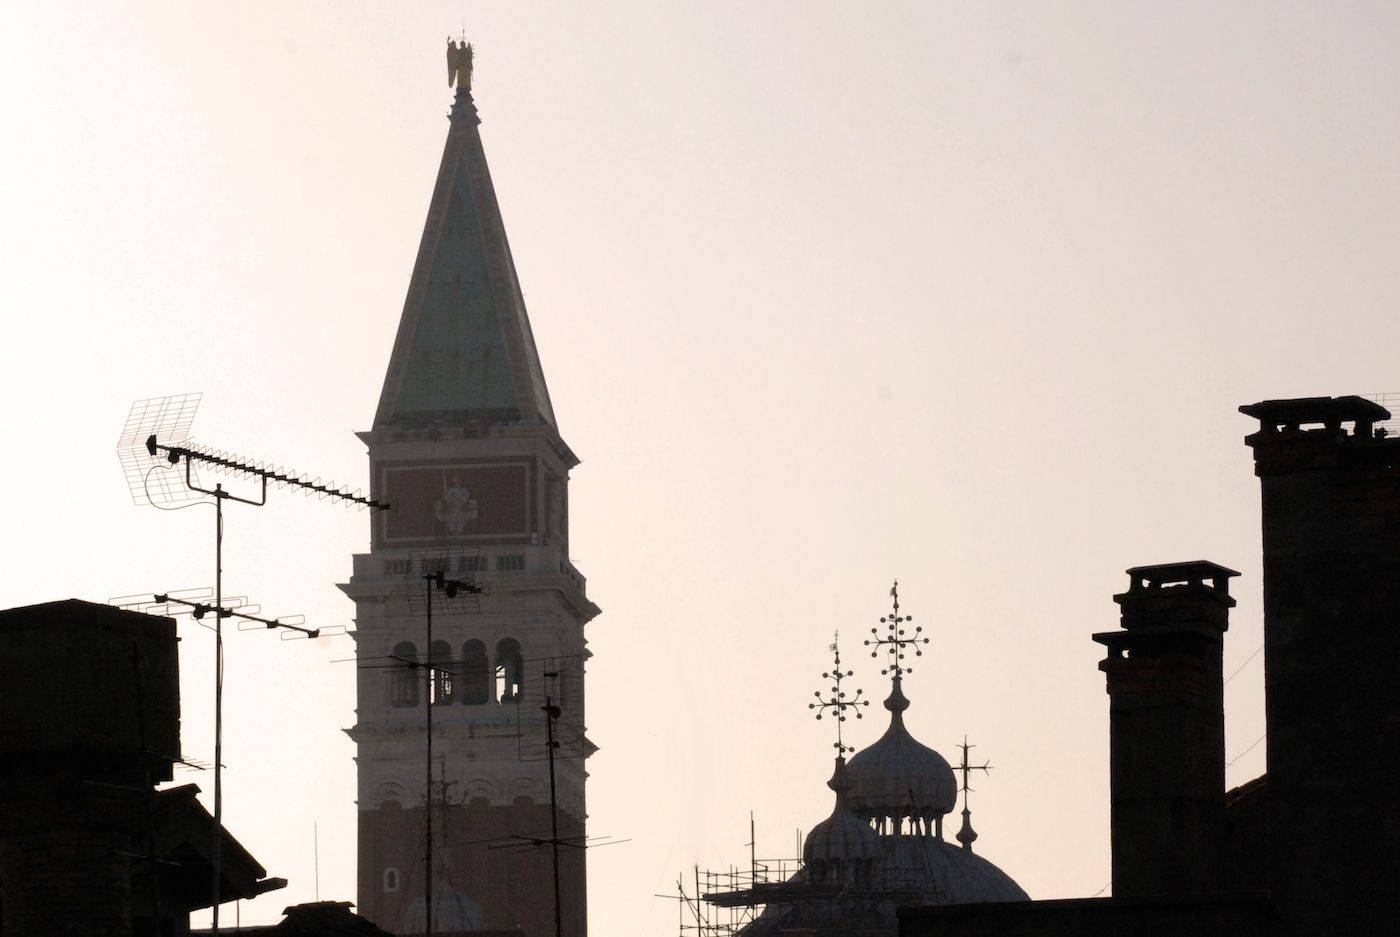 view of San Marco bell tower from the Altana roof-top terrace